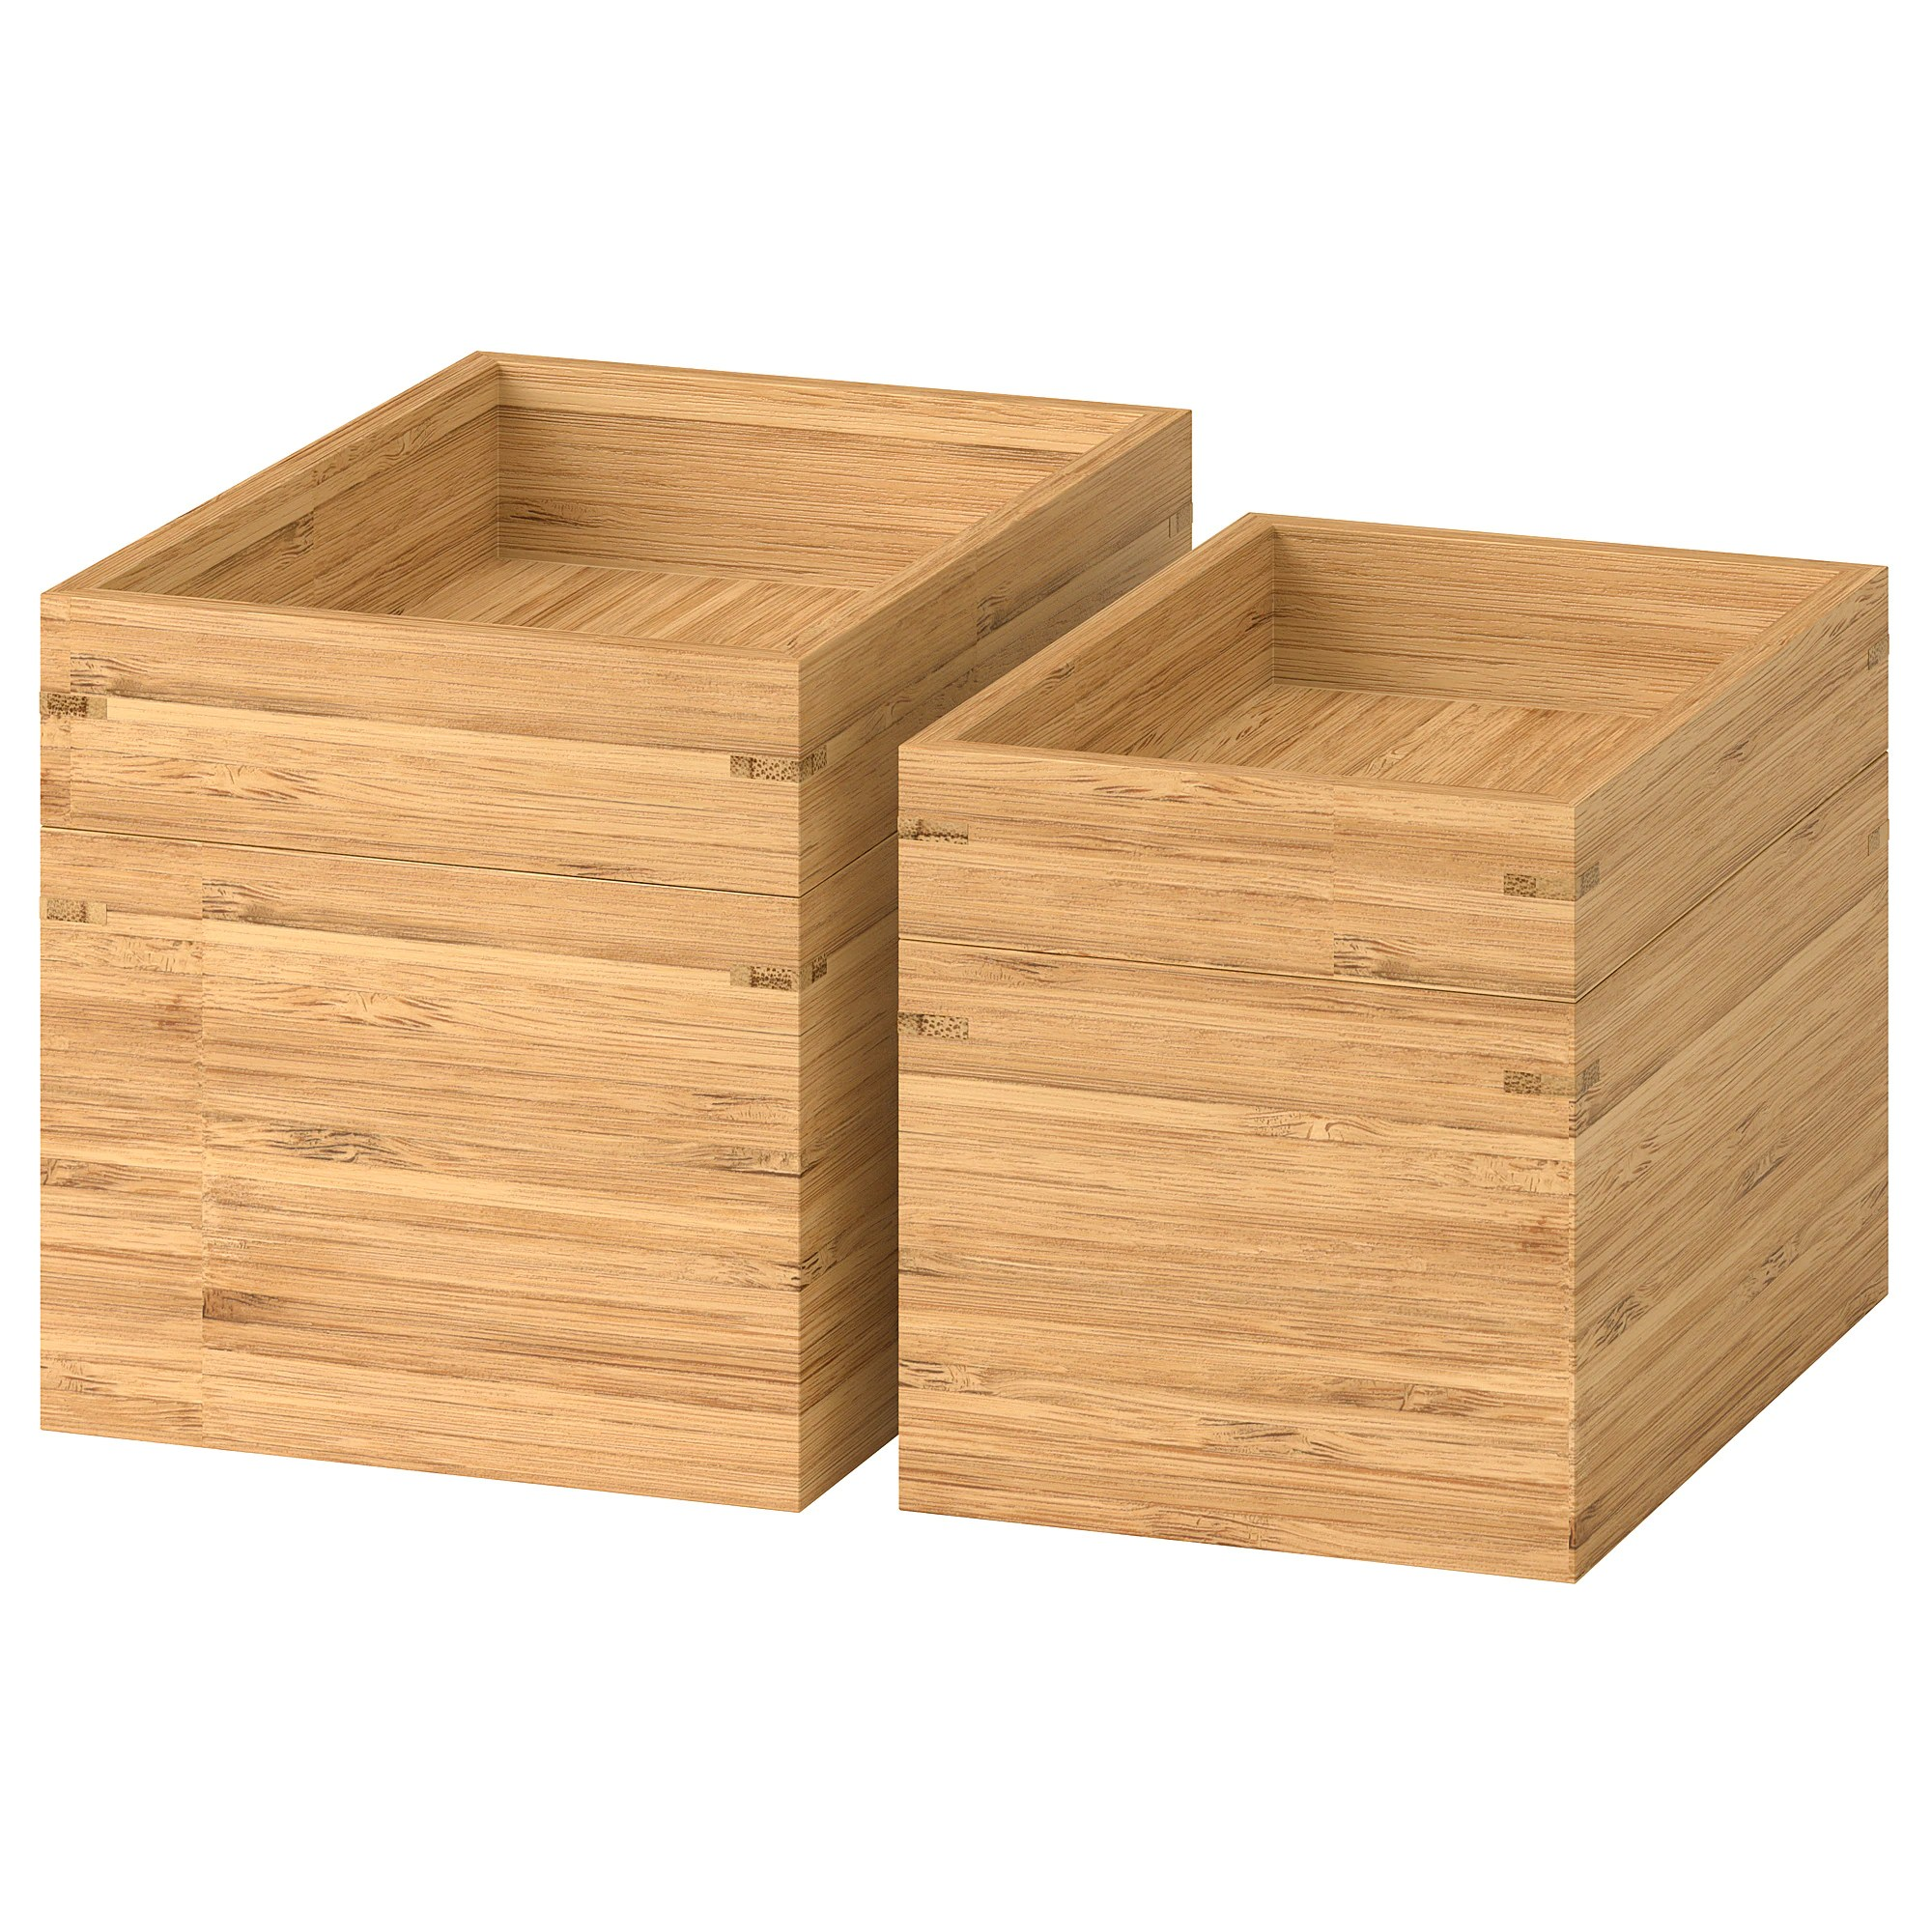 Ikea Dragan Badezimmer Set Dragan 4 Piece Bathroom Set Bamboo